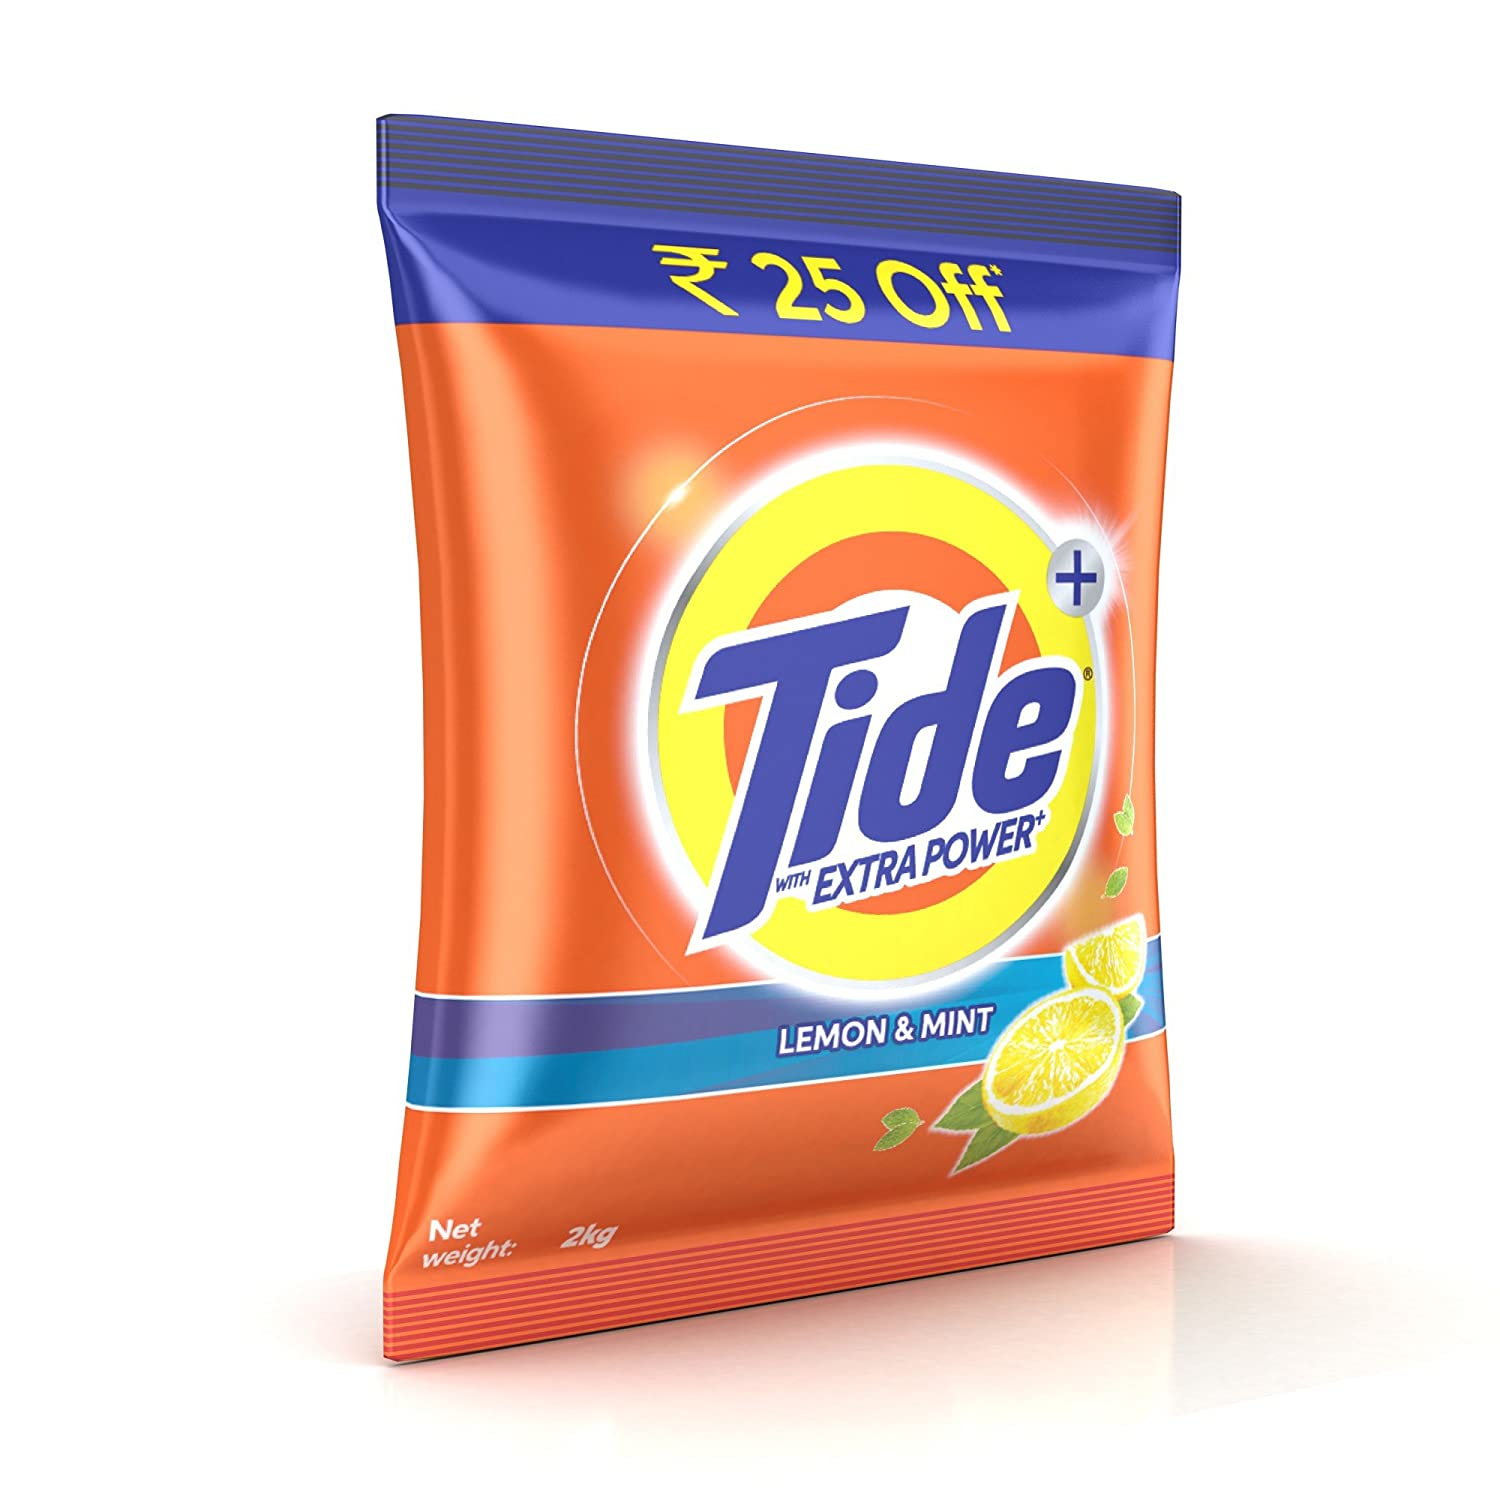 Tide Plus Extra Power Detergent Washing Powder - 2 kg (Lemon and